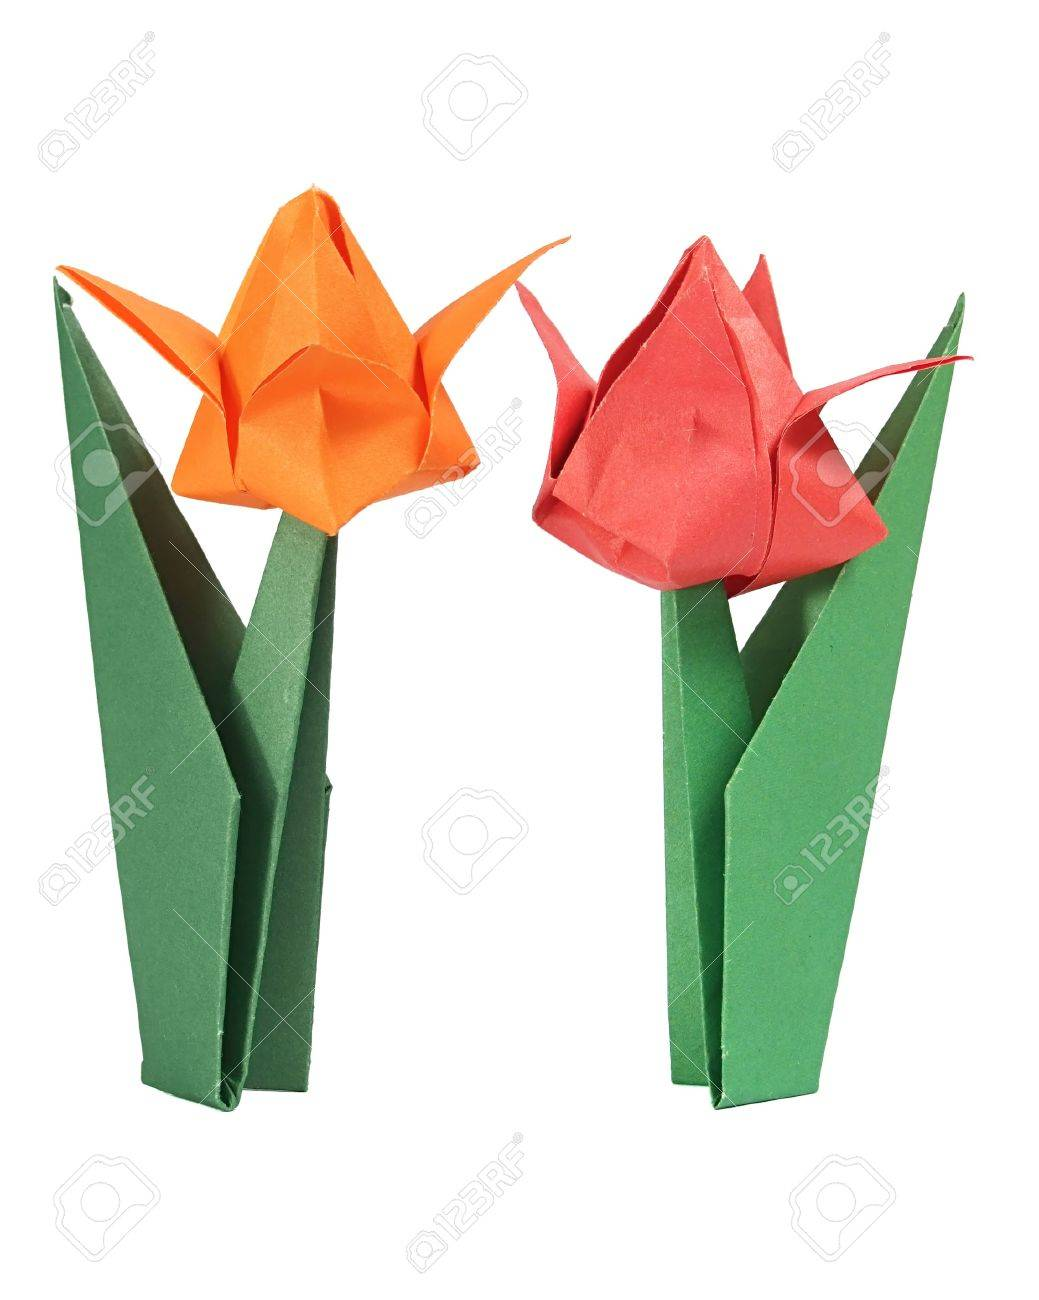 Origami tulip over white stock photo picture and royalty free origami tulip over white stock photo 7602460 jeuxipadfo Image collections